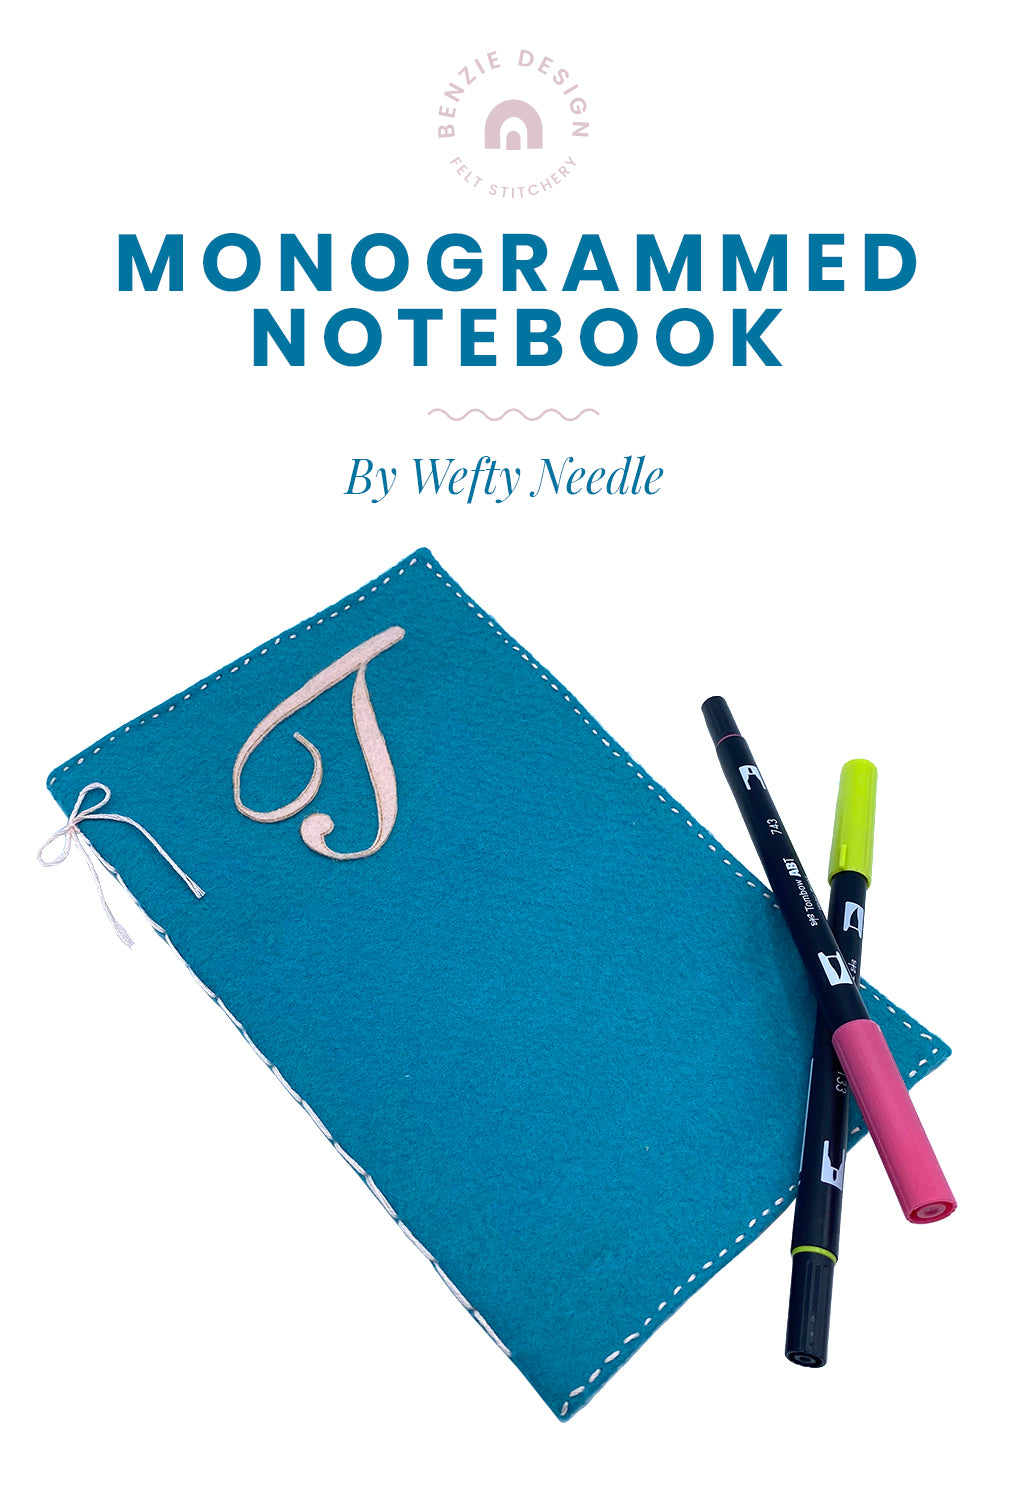 Monogrammed Notebook Tutorial